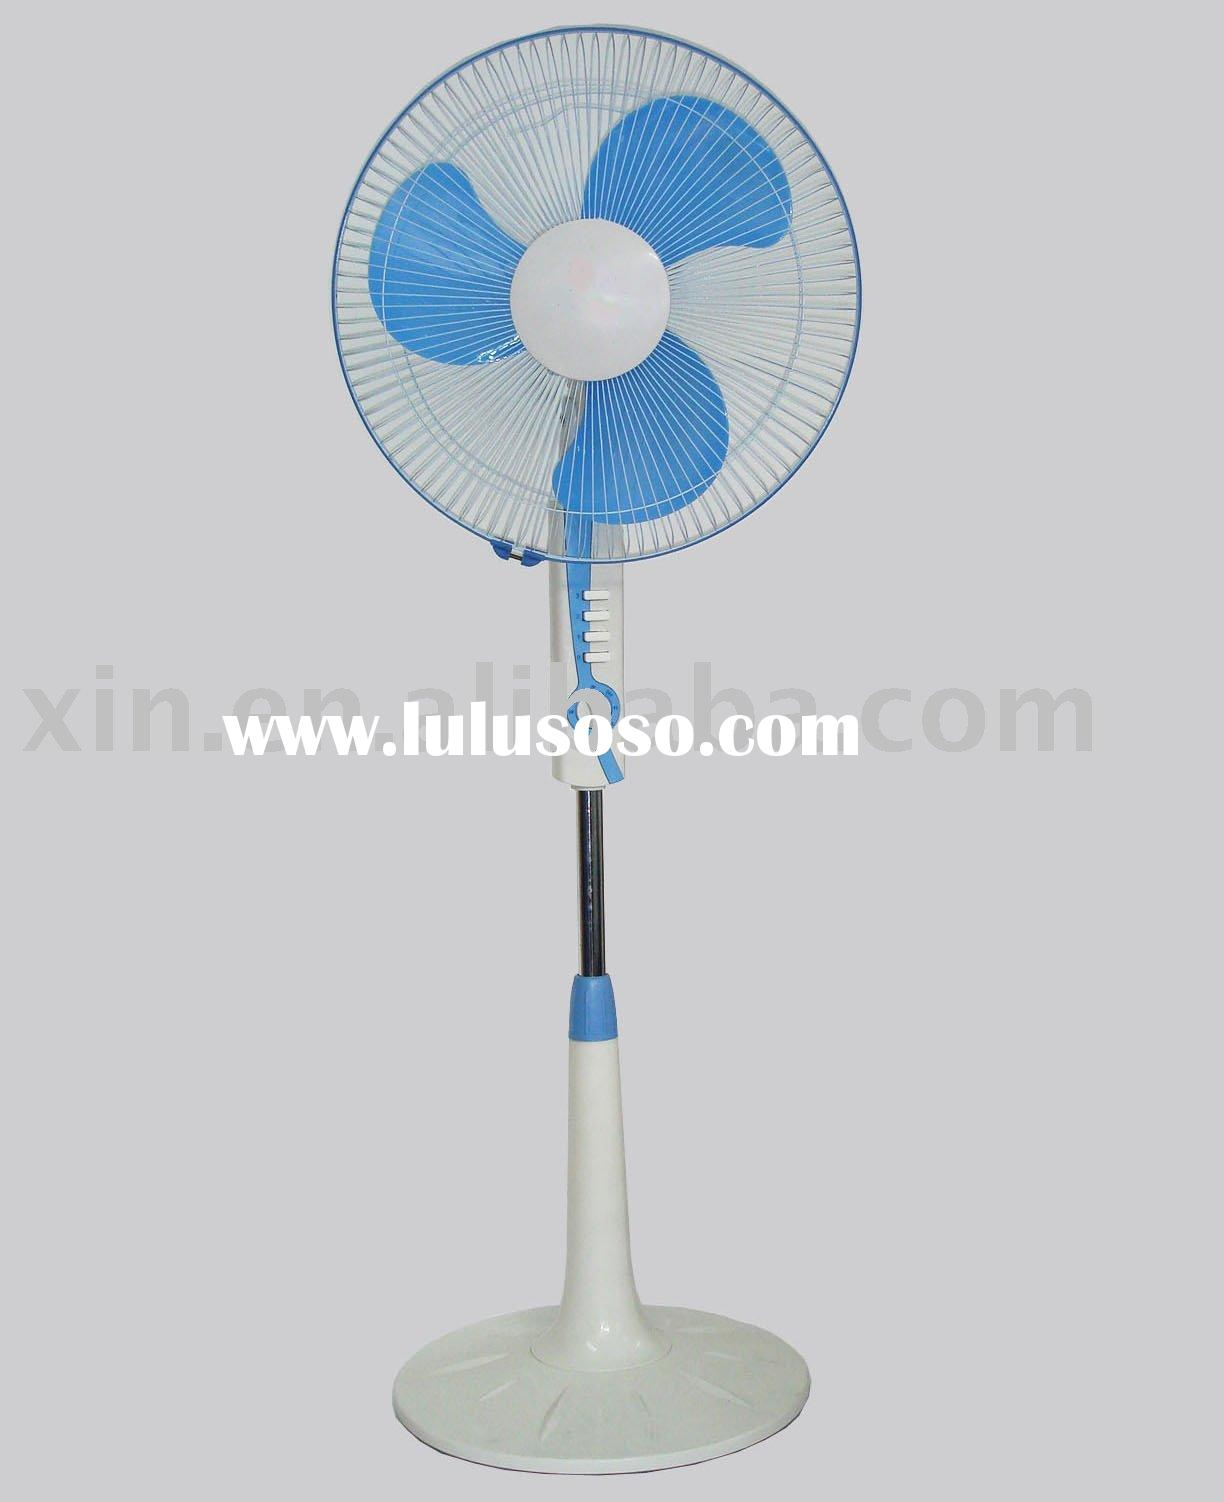 electric fan brands how to diagram a complex sentence new manufacturers in